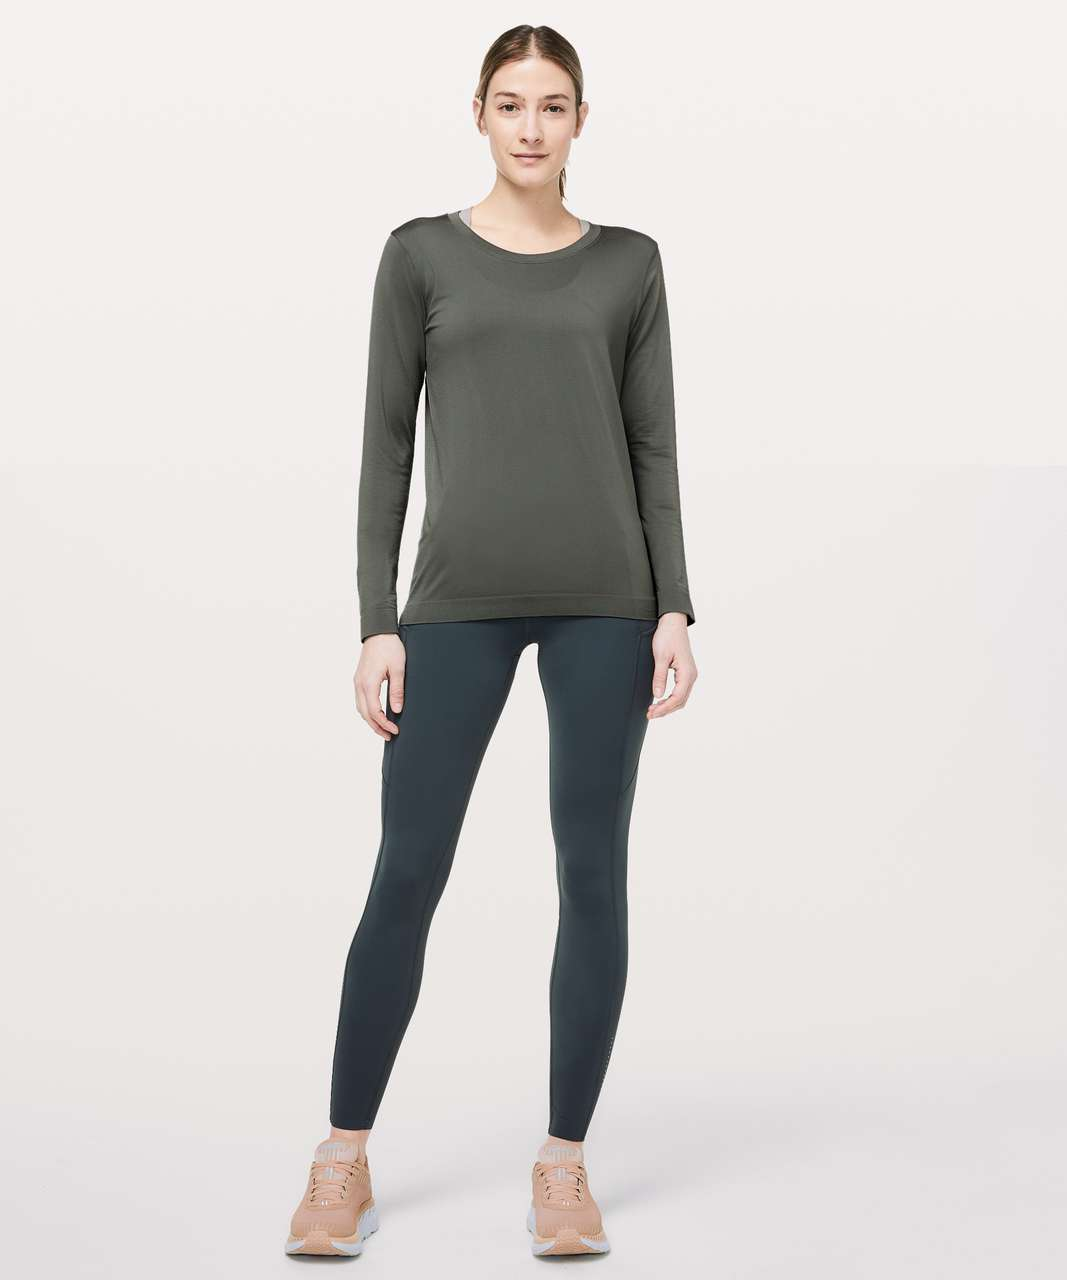 Lululemon Swiftly Tech Long Sleeve (Breeze) *Relaxed Fit - Grey Sage / Grey Sage